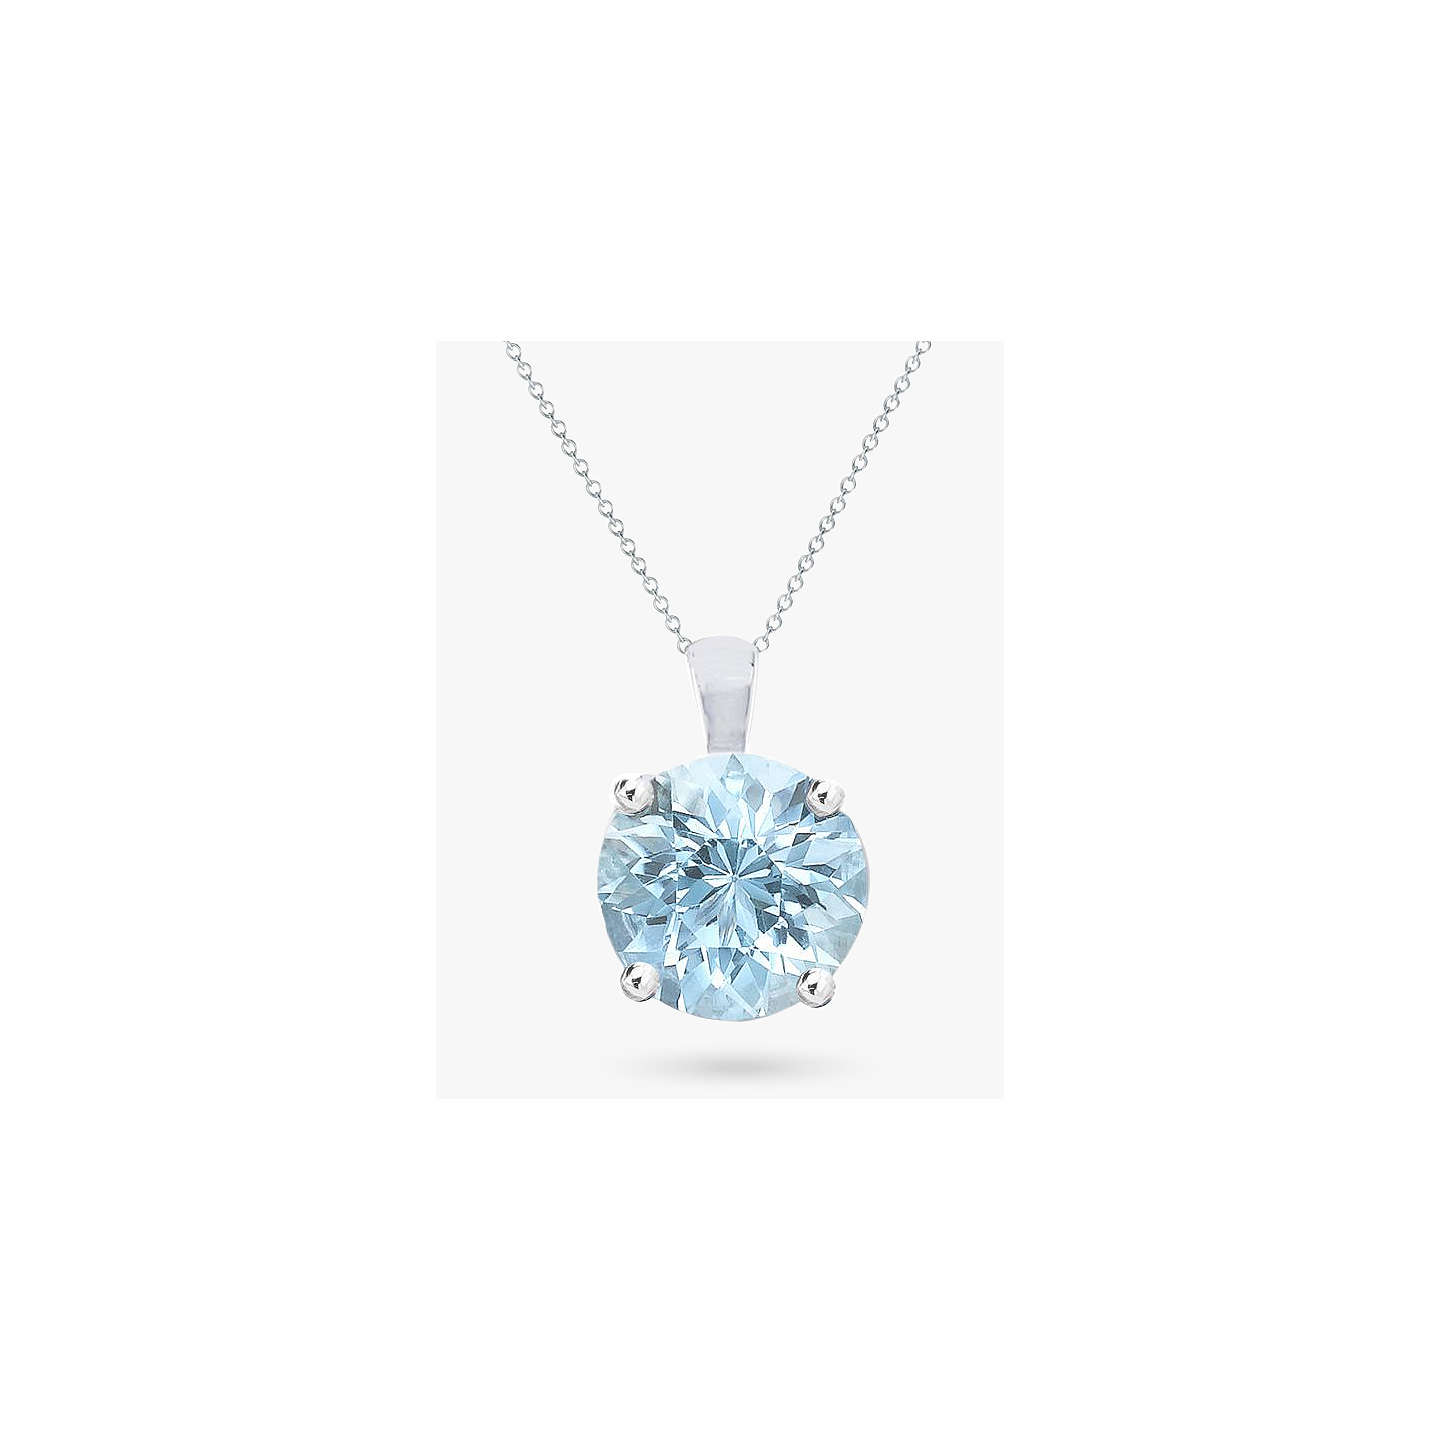 aquamarine lightbox el z jewelry necklace pendant product edit mg natural